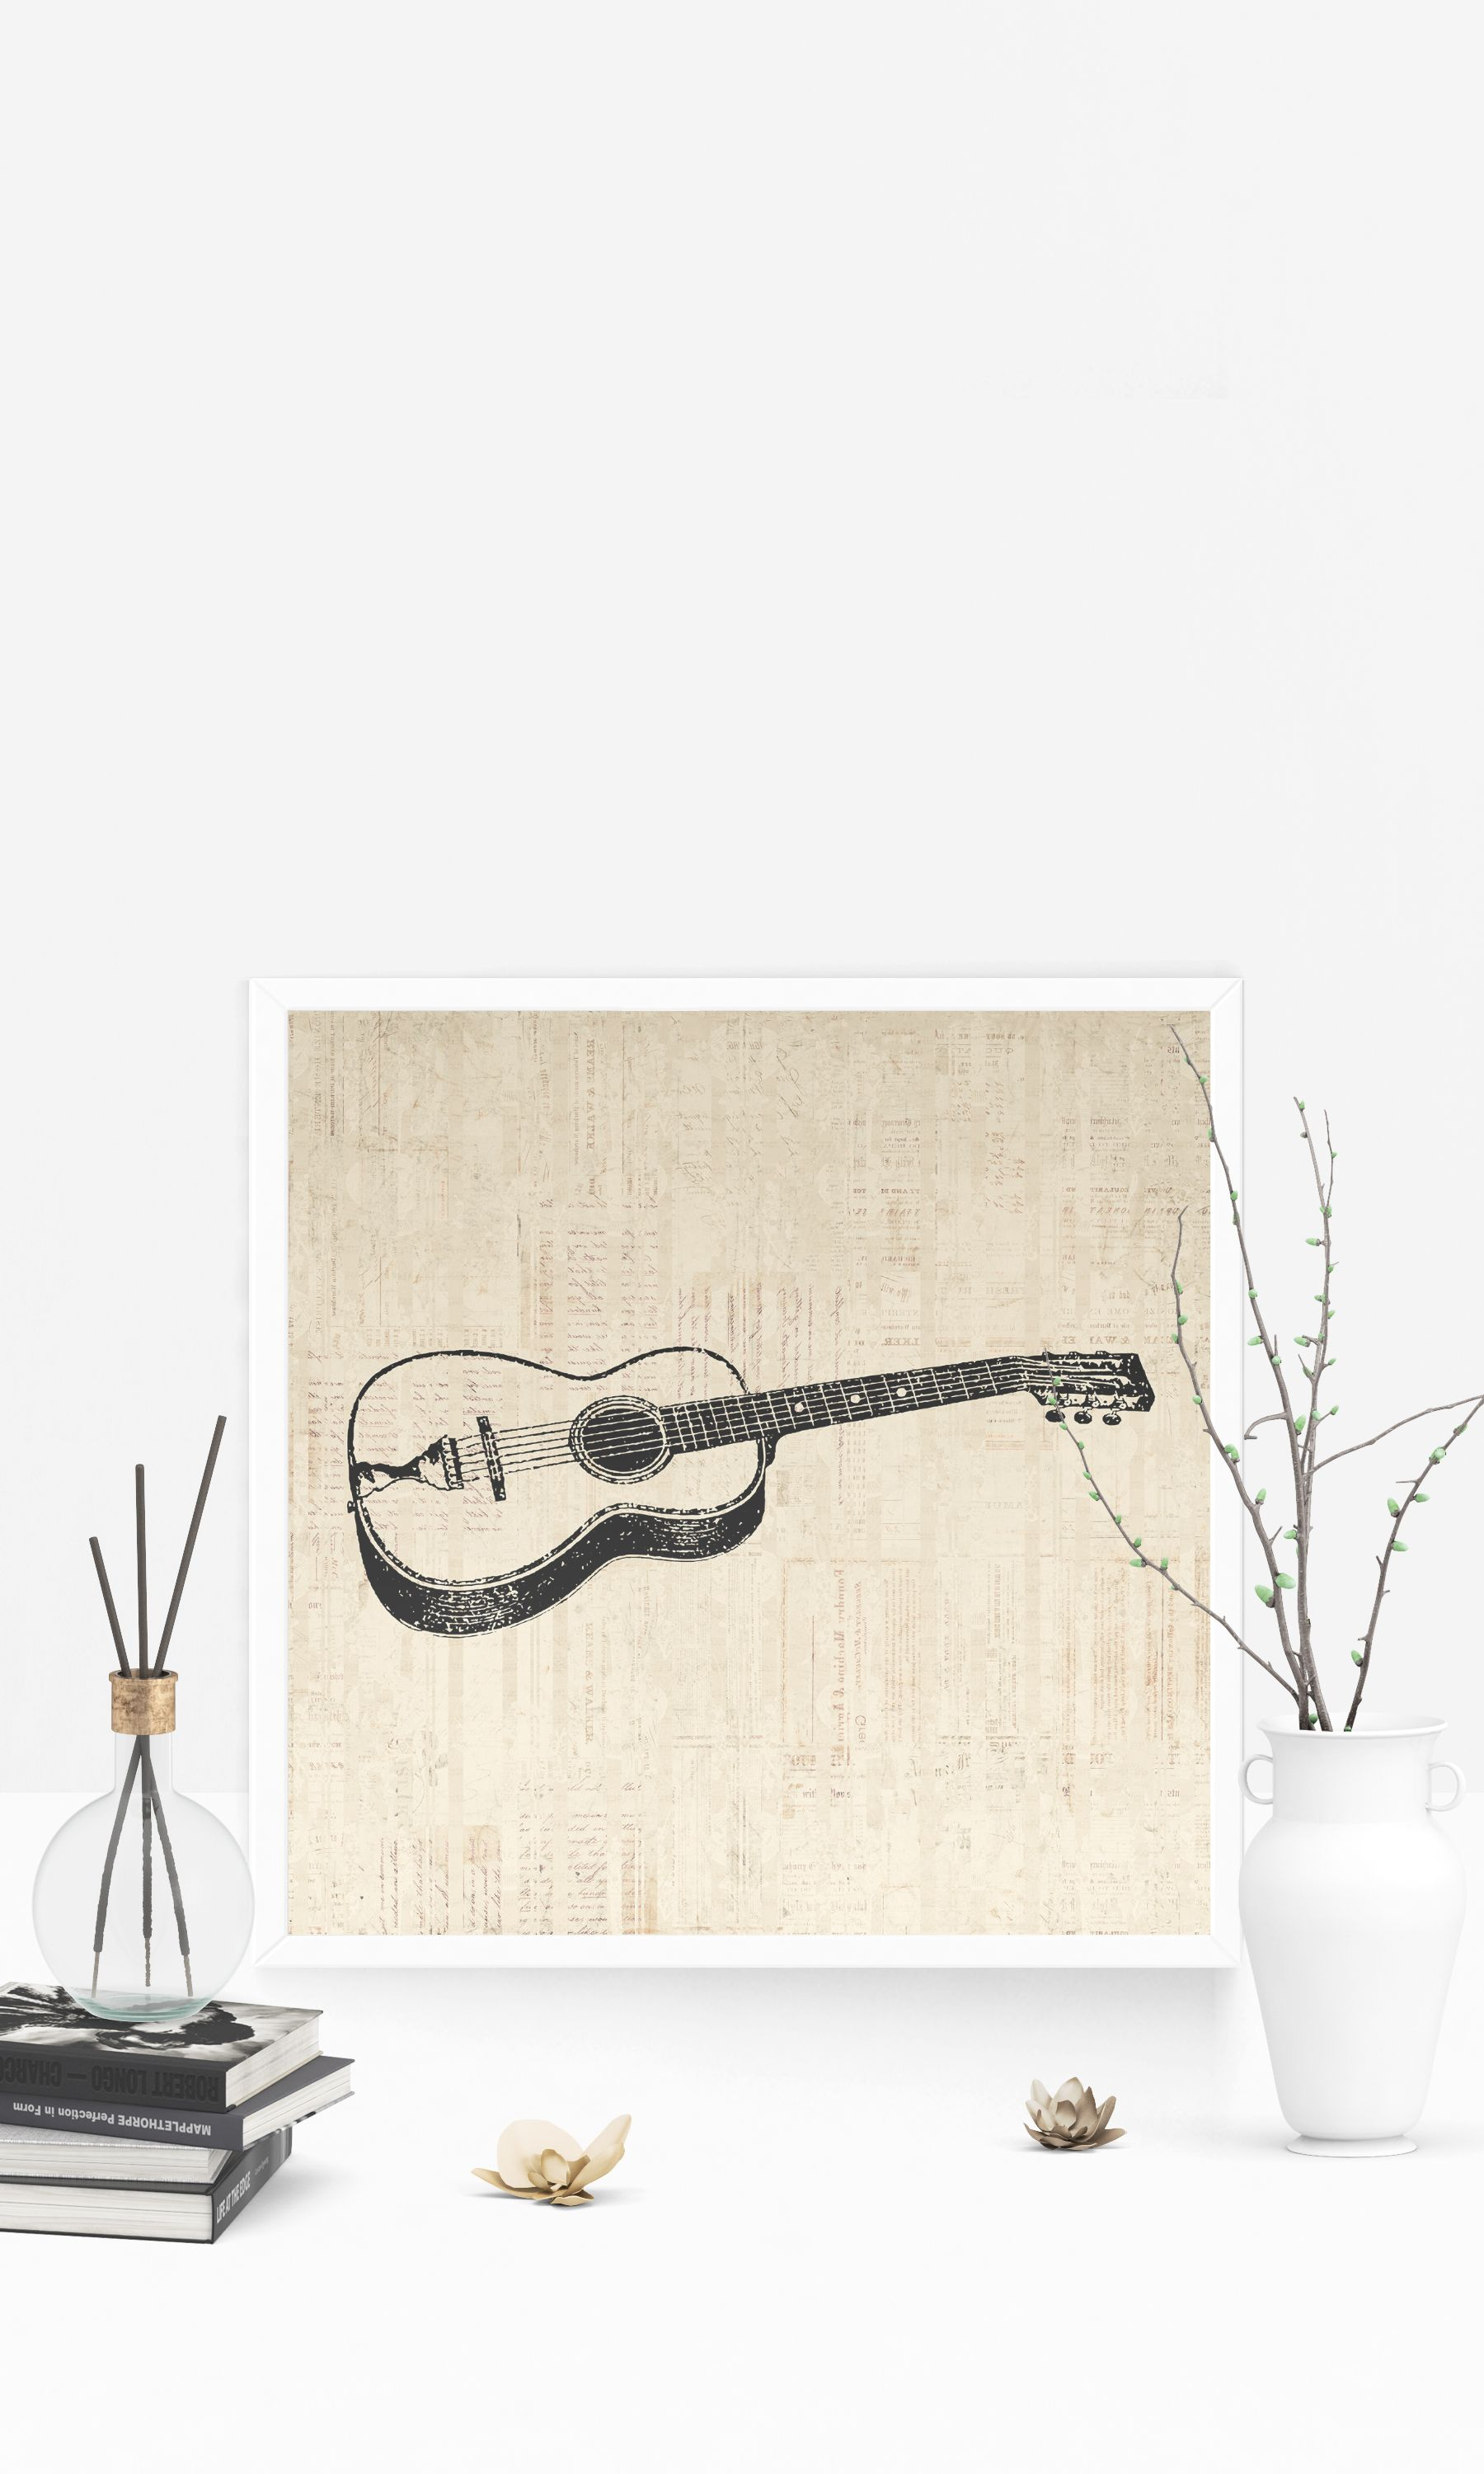 Vintage acoustic guitar print for wall art u home decoration with a